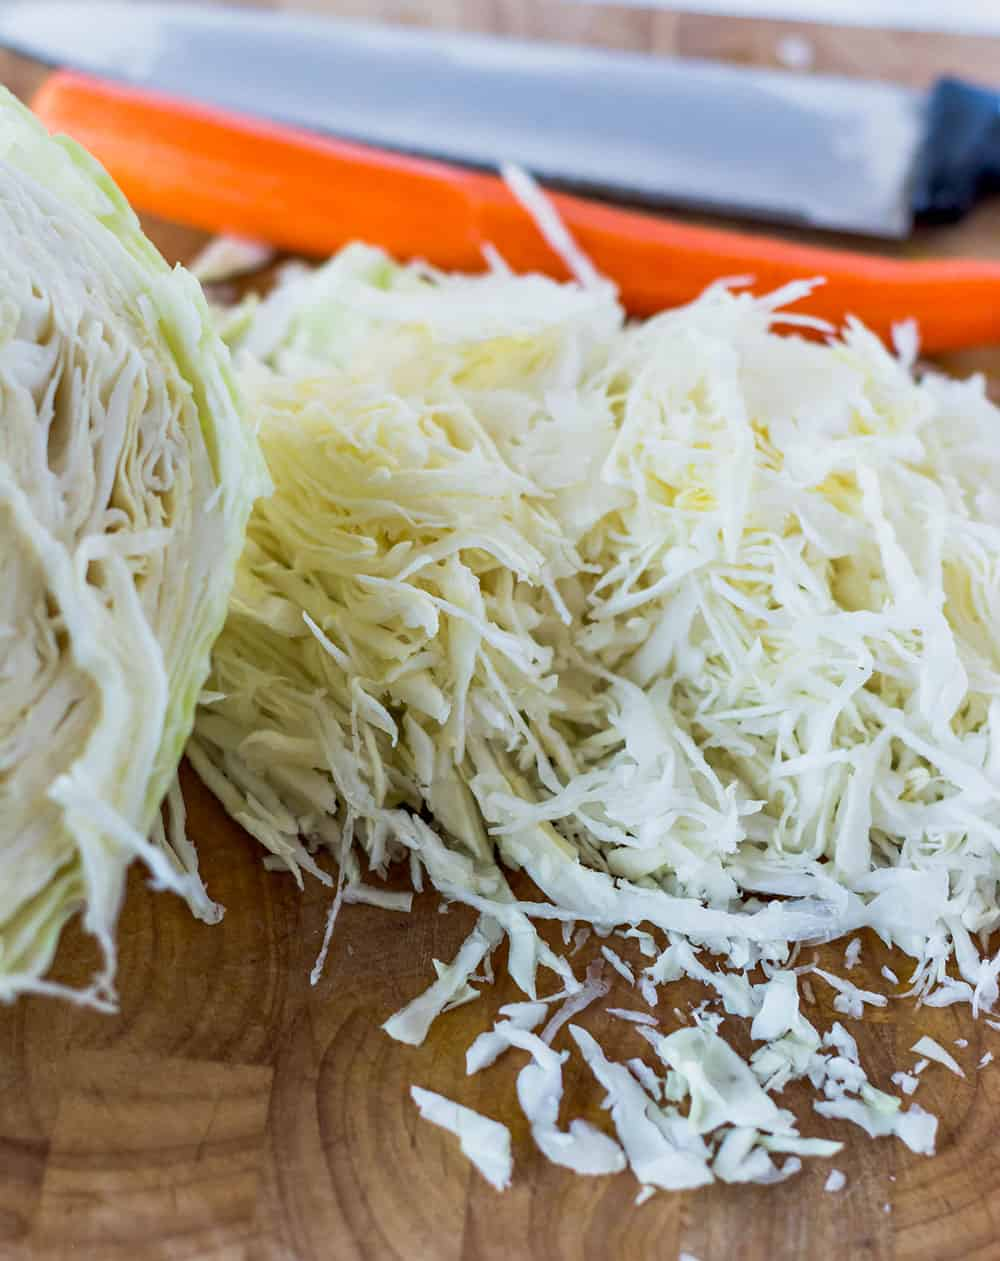 Cabbage and Carrots being chopped